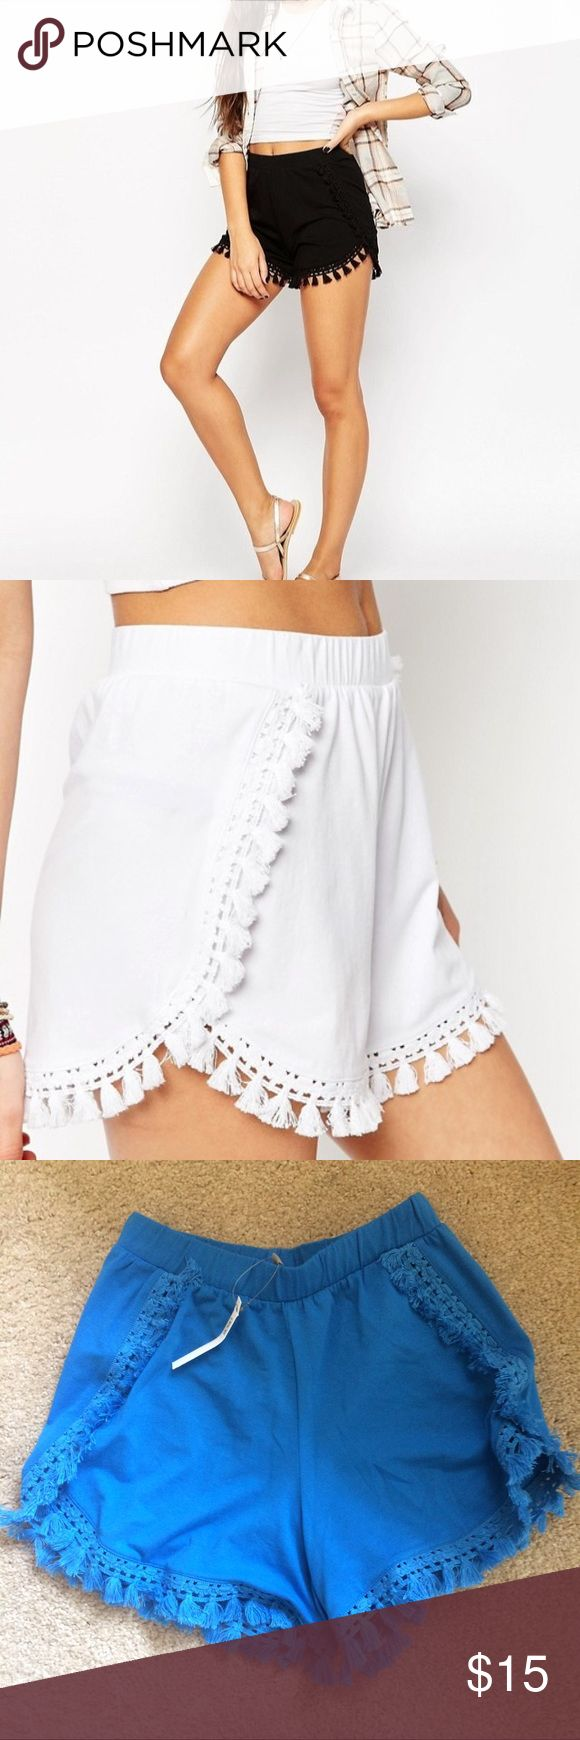 ASOS jersey short with tassel hem **Not included in closet sale** Super cute and comfy! These sit at a mid to high rise and have a tulip hem at the outside of either leg. Tassel hem along the sides and bottom. Elastic banded waist. 96% cotton, 4% elastane. UK 10/US 6/EU 38 ASOS Shorts